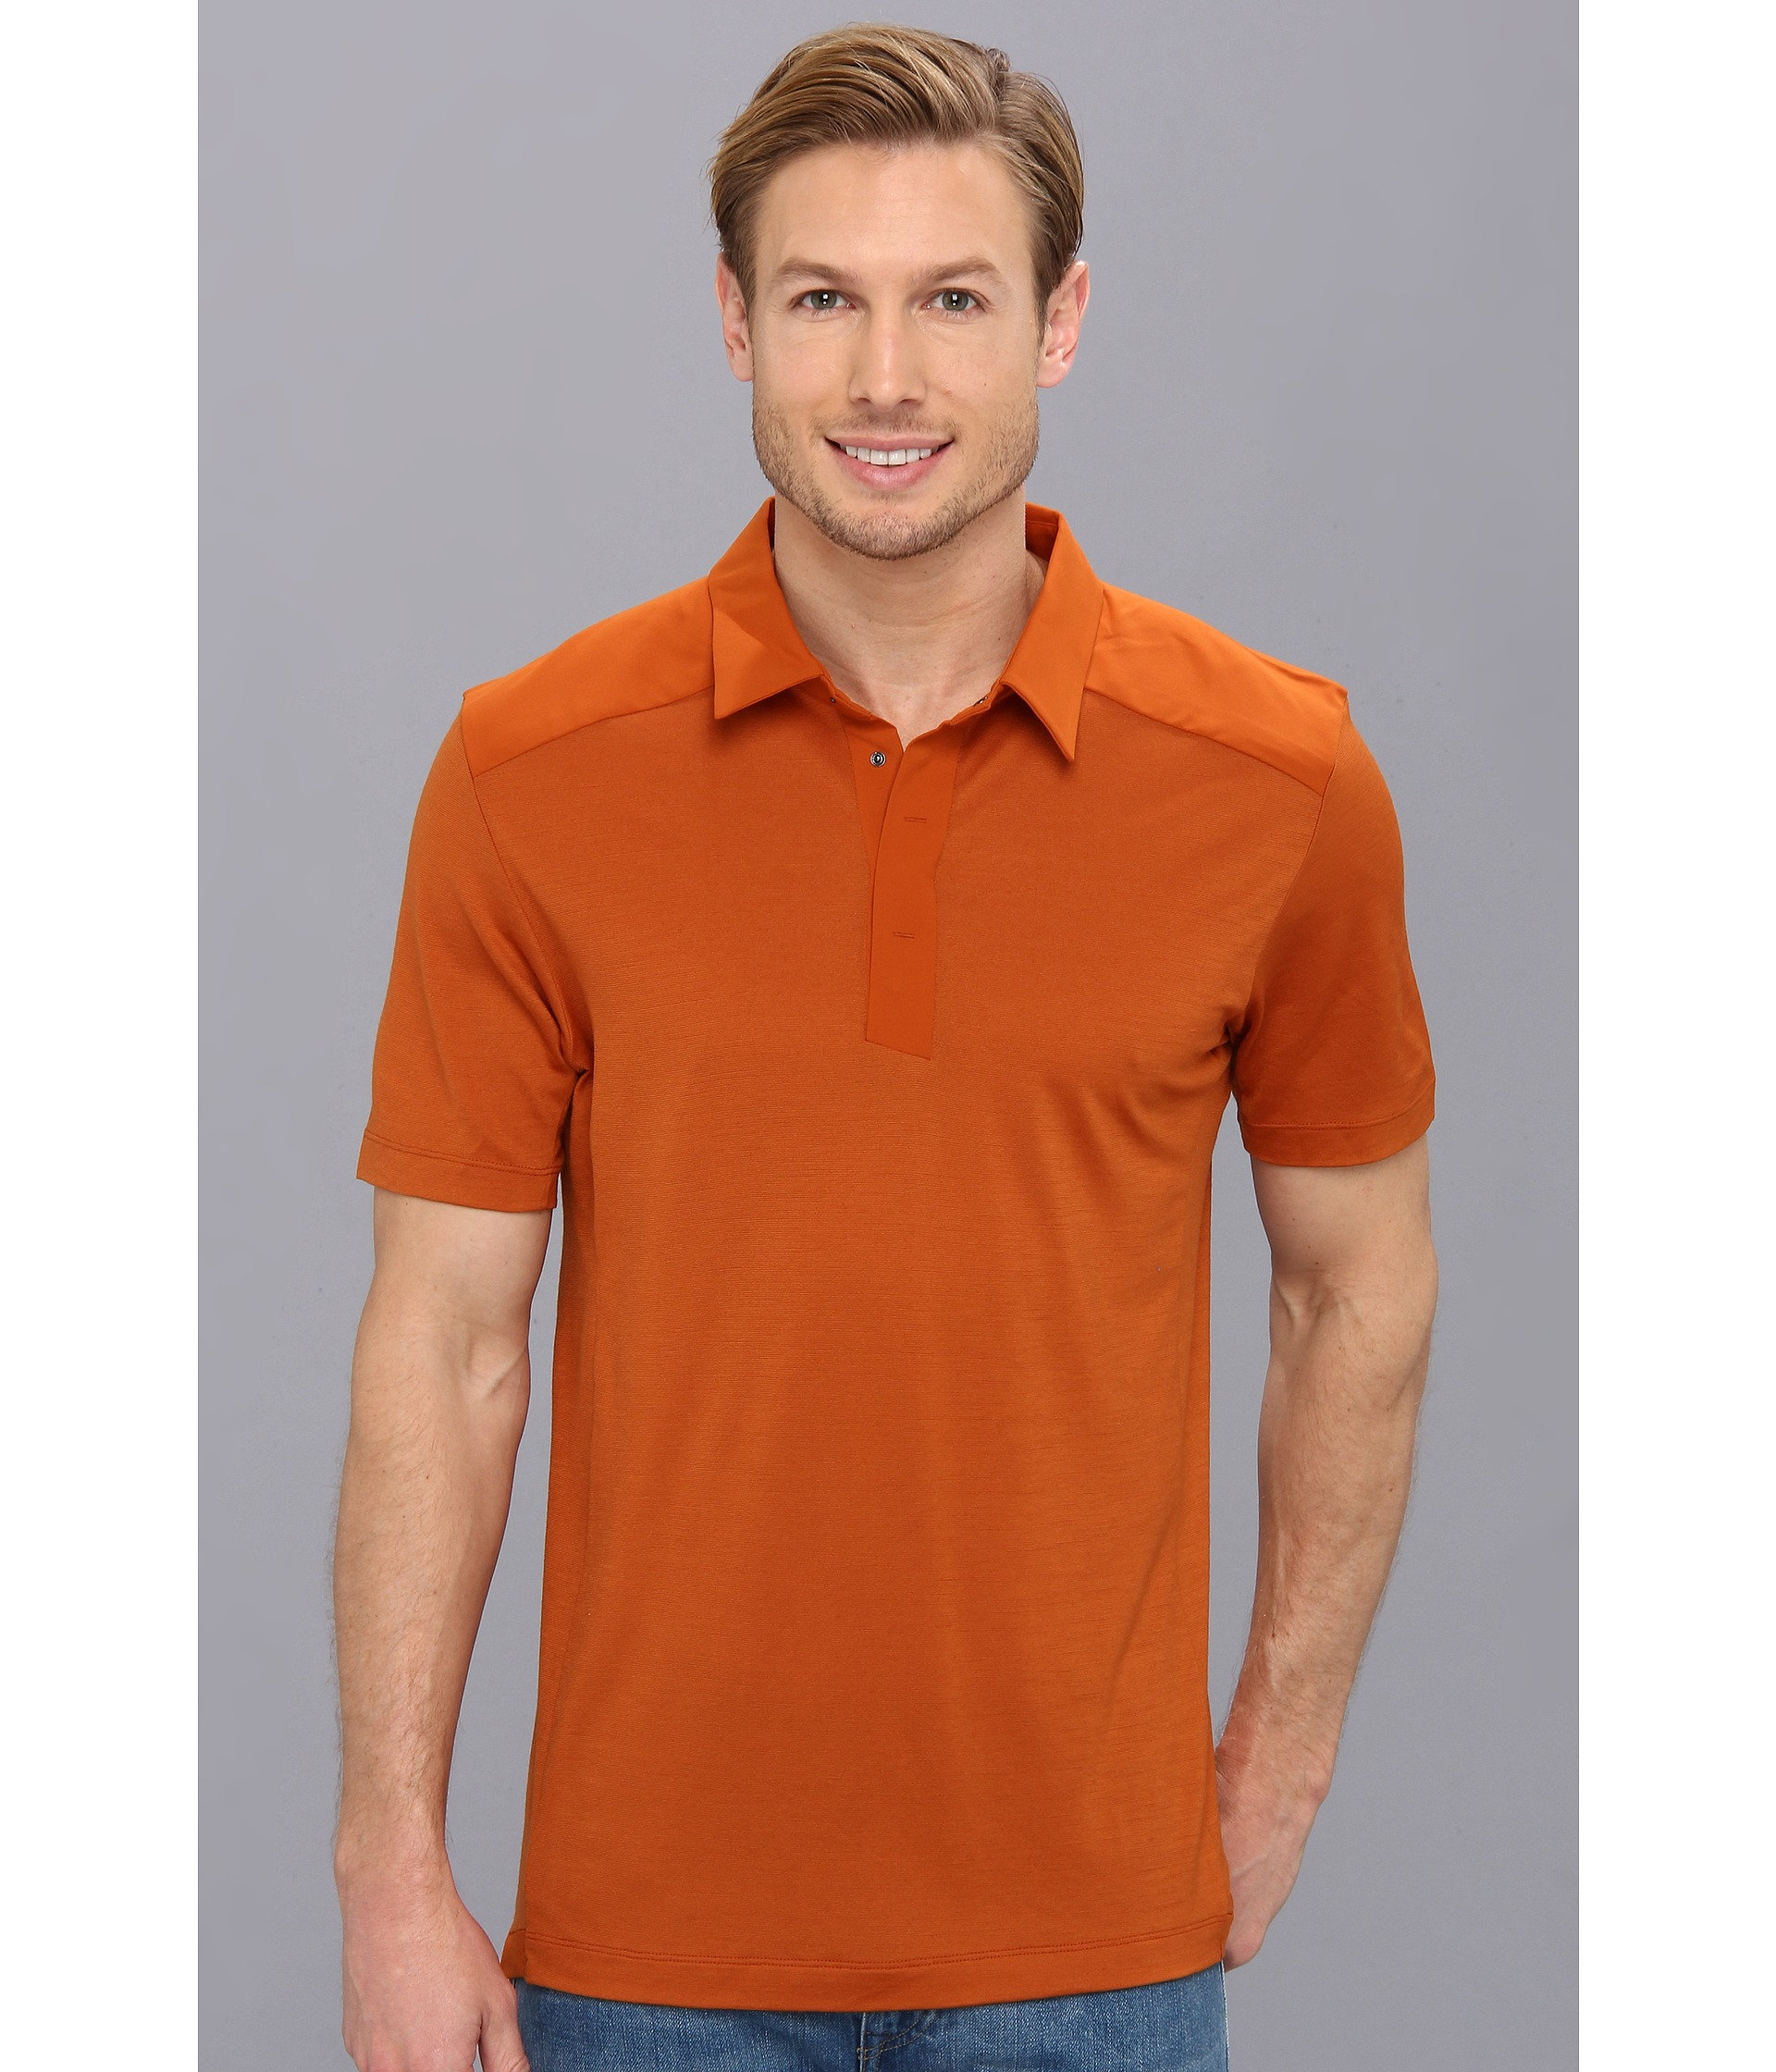 lyst arc 39 teryx a2b polo shirt in orange for men. Black Bedroom Furniture Sets. Home Design Ideas